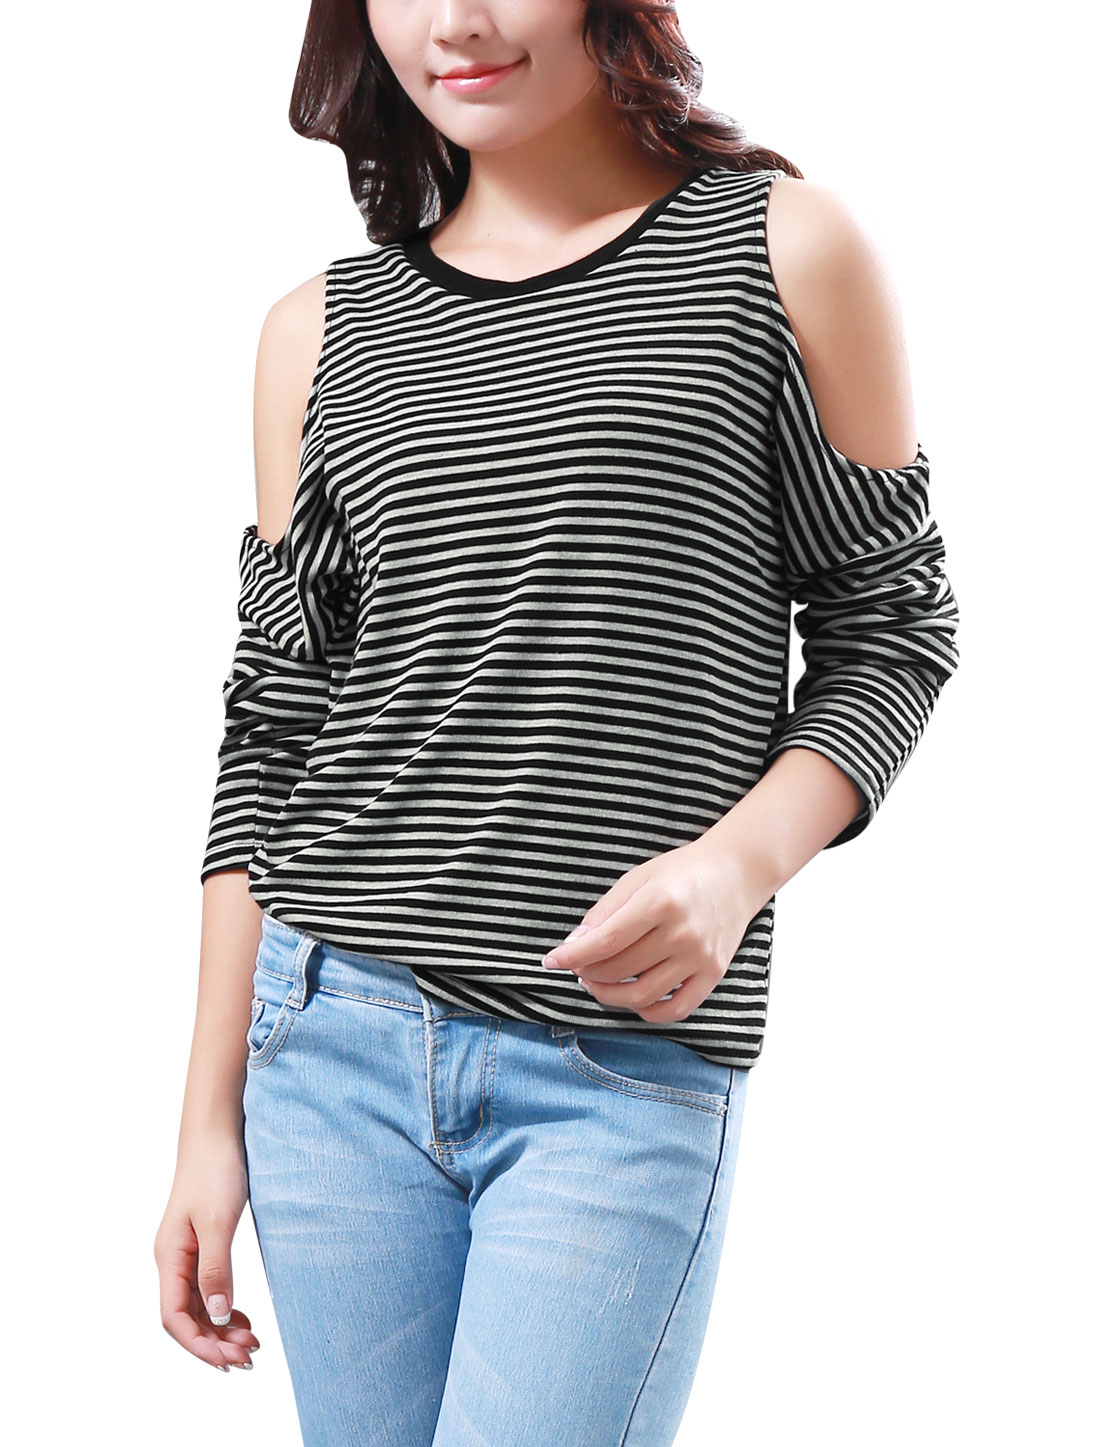 Women Long Dolman Sleeves Cut Out Shoulder Stripes Stylish Top Black White S